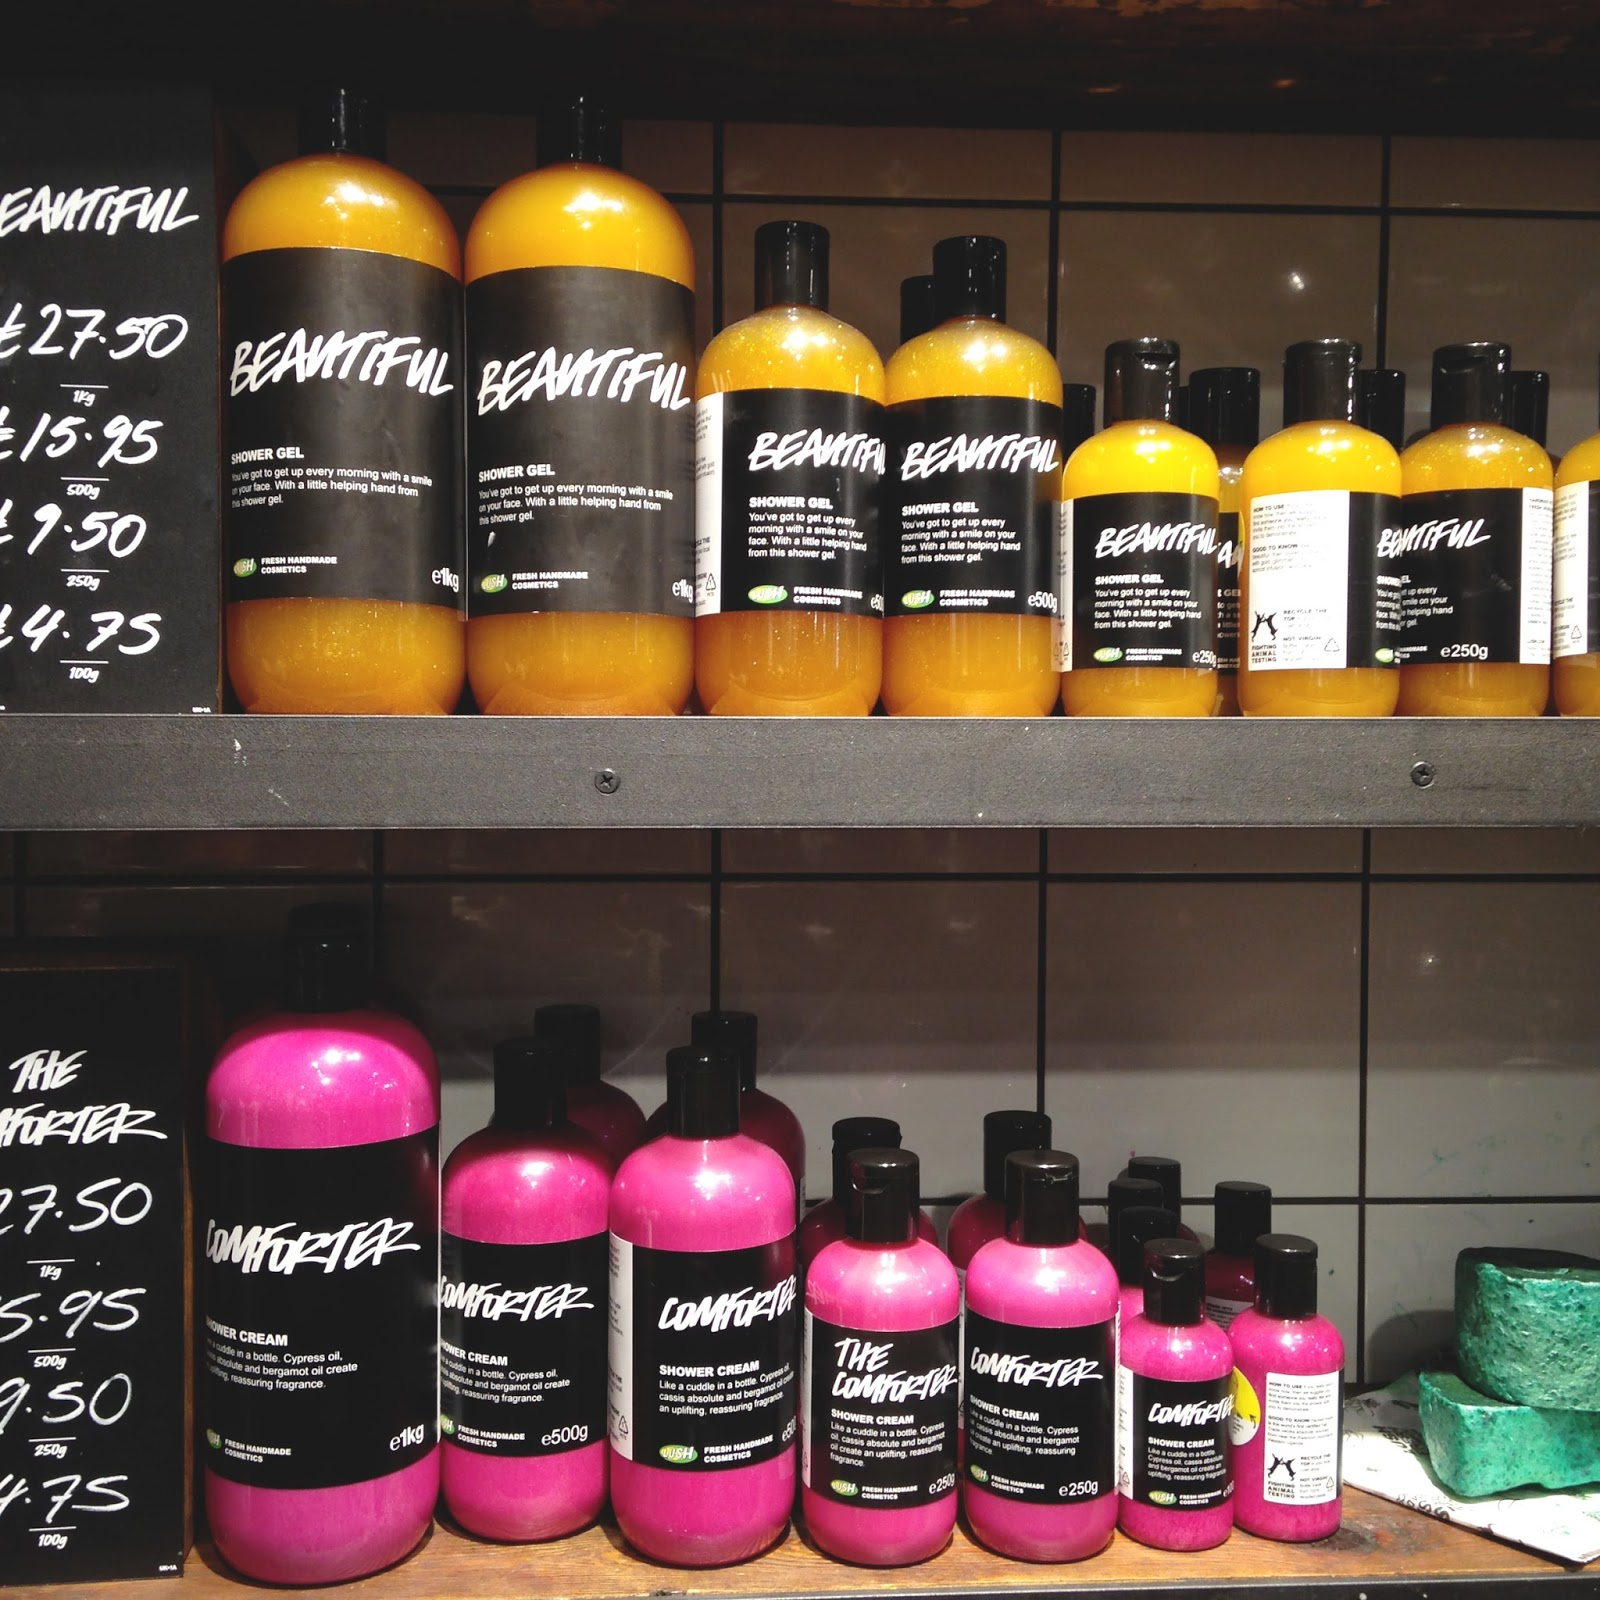 shower gels at lush